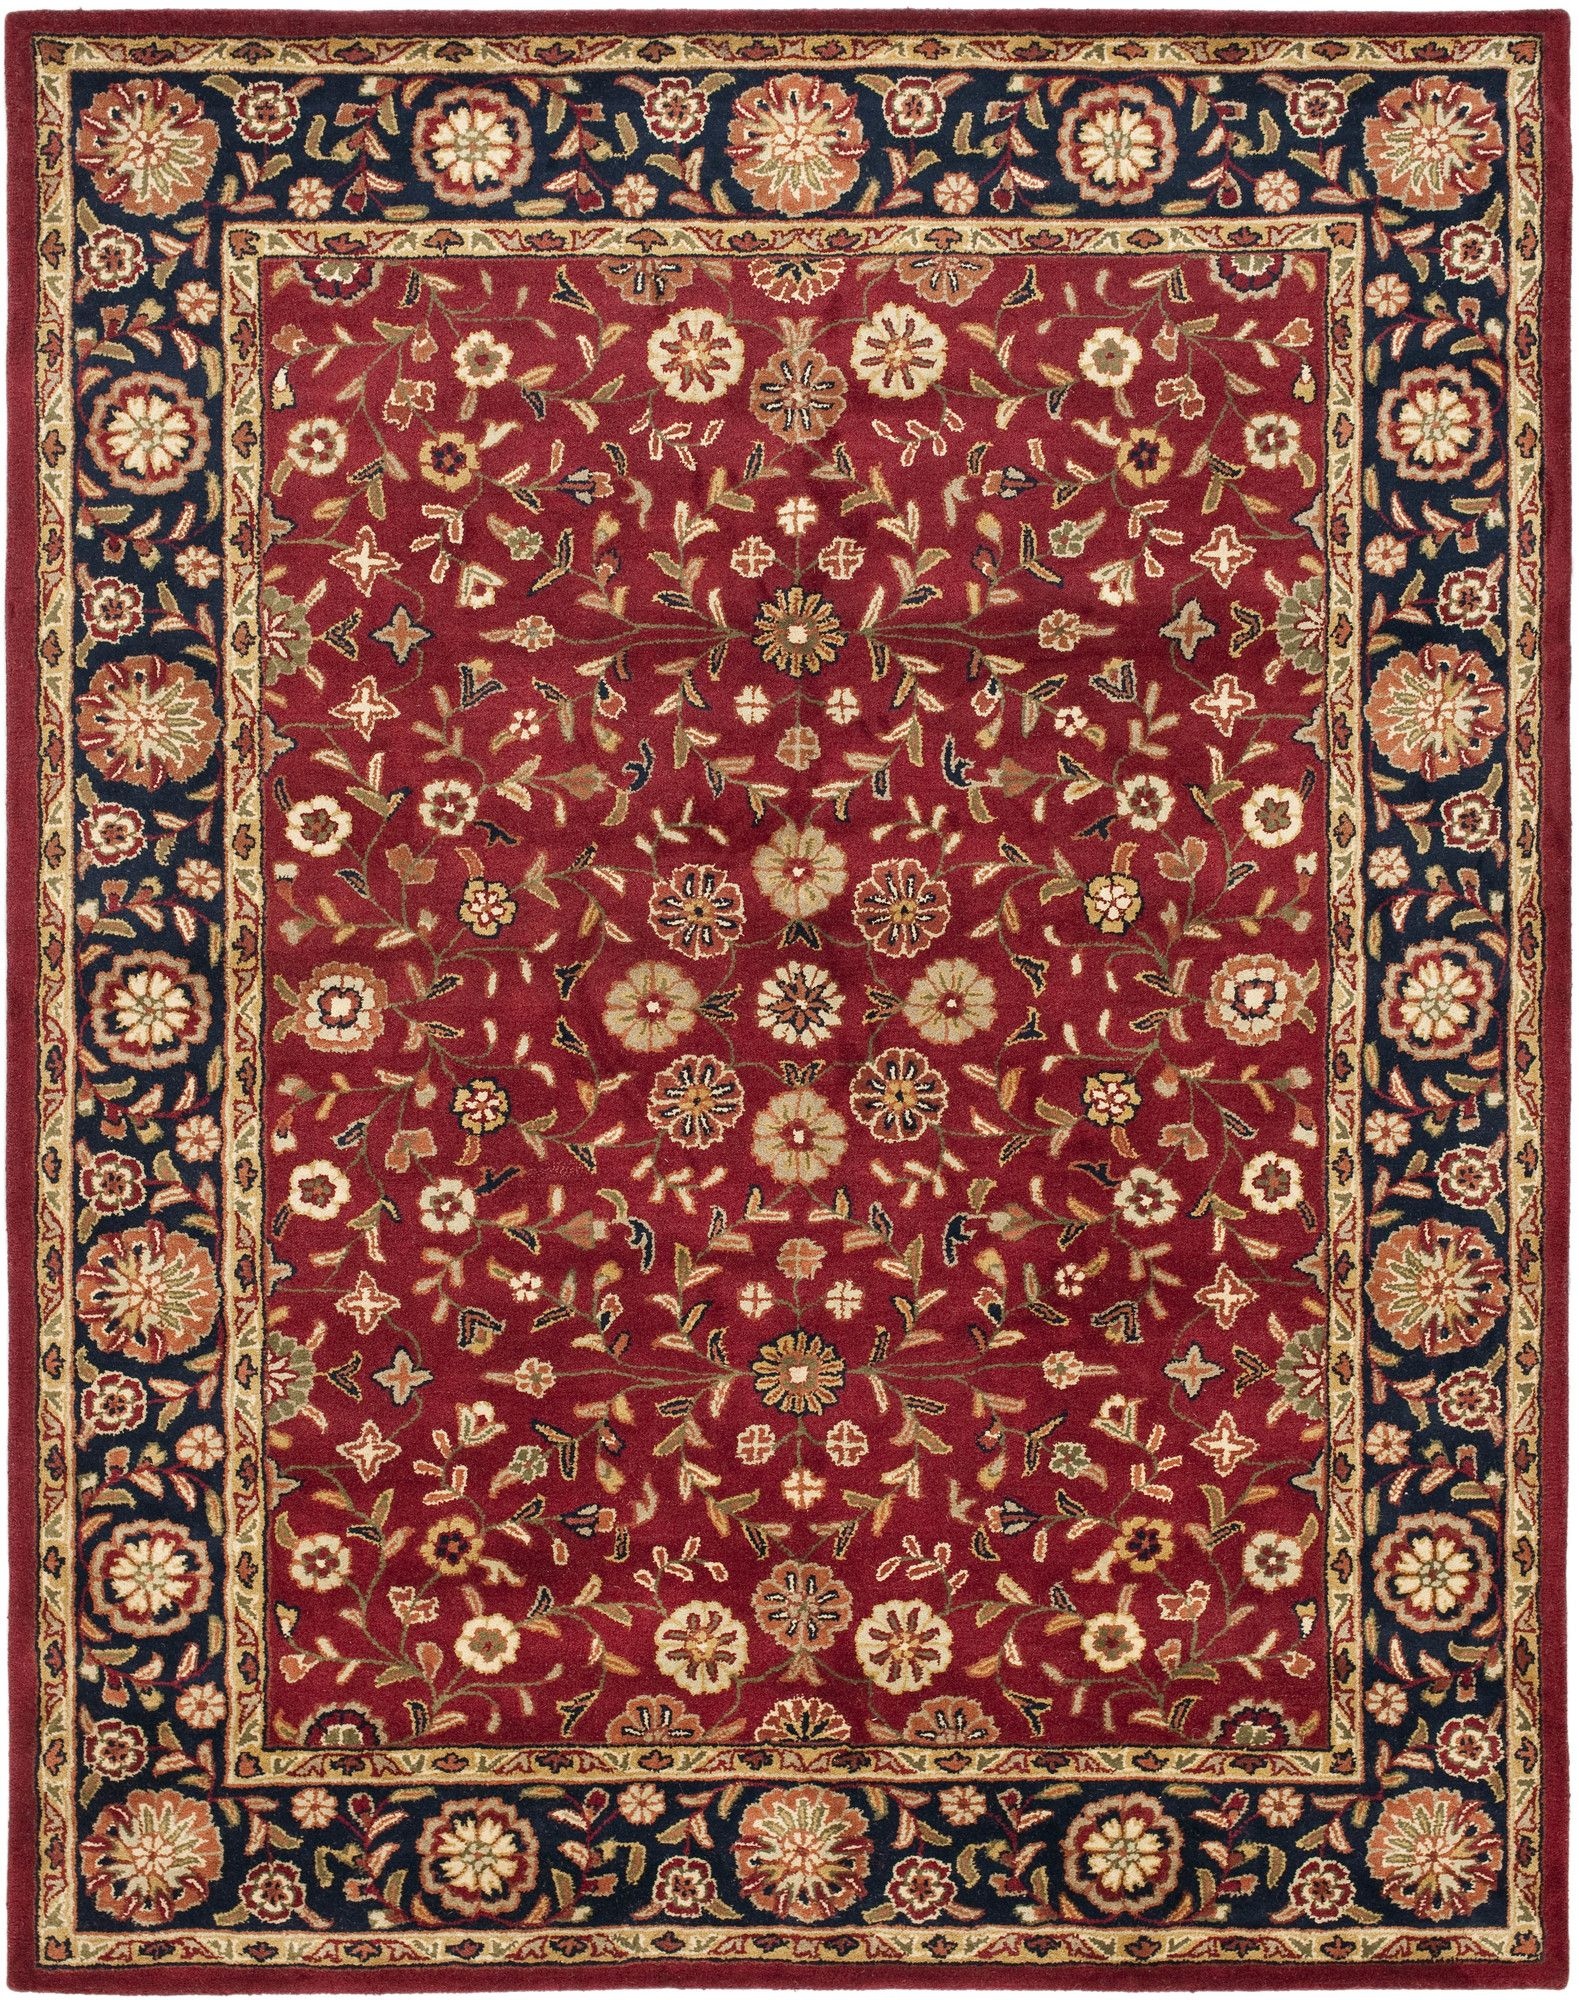 Cranmore Oriental Handmade Tufted Wool Red Navy Area Rug In 2021 Rugs Traditional Area Rugs Floral Area Rugs